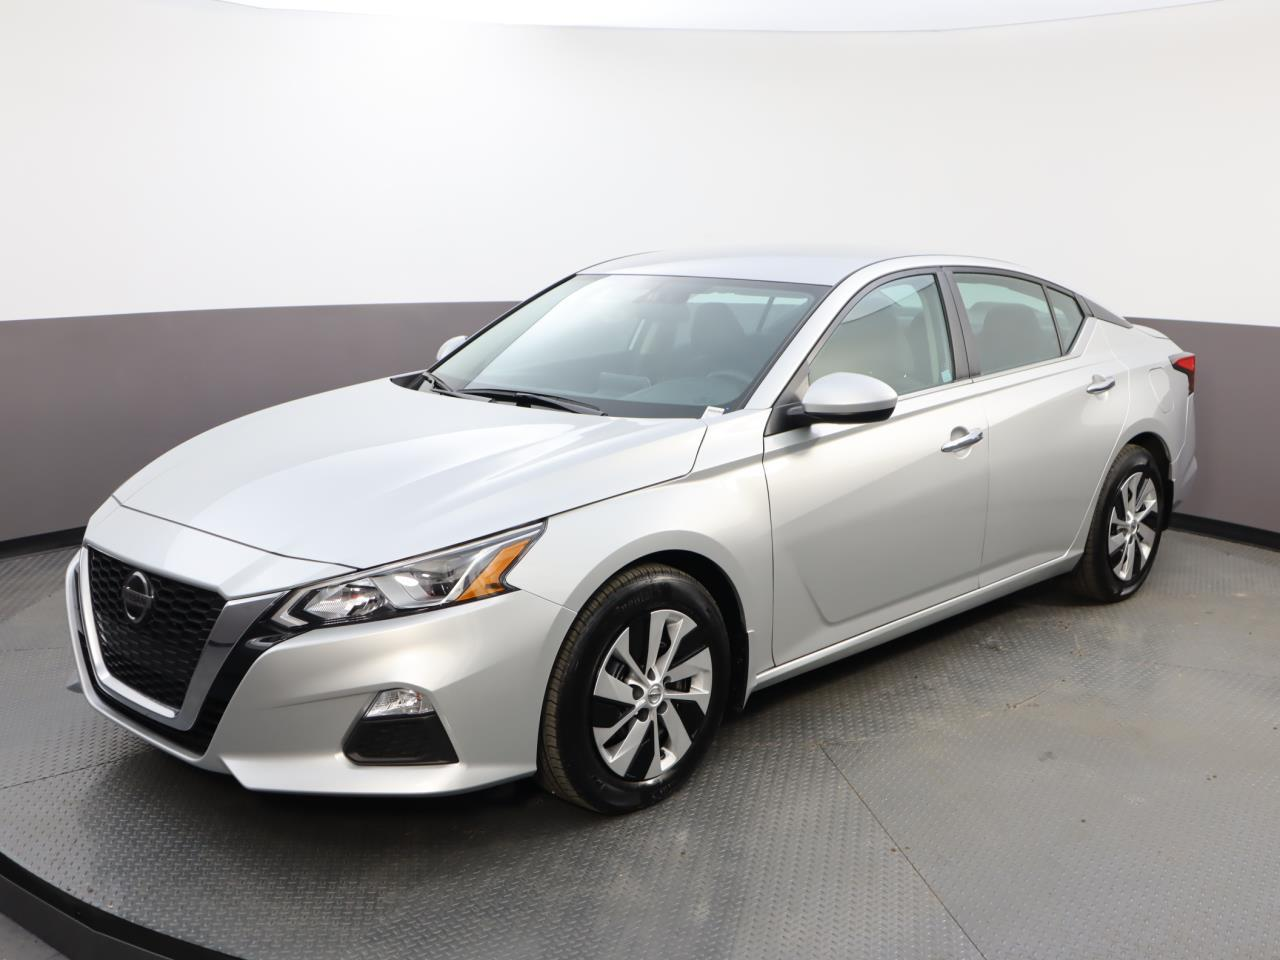 Used NISSAN ALTIMA 2019 MIAMI 2.5 S